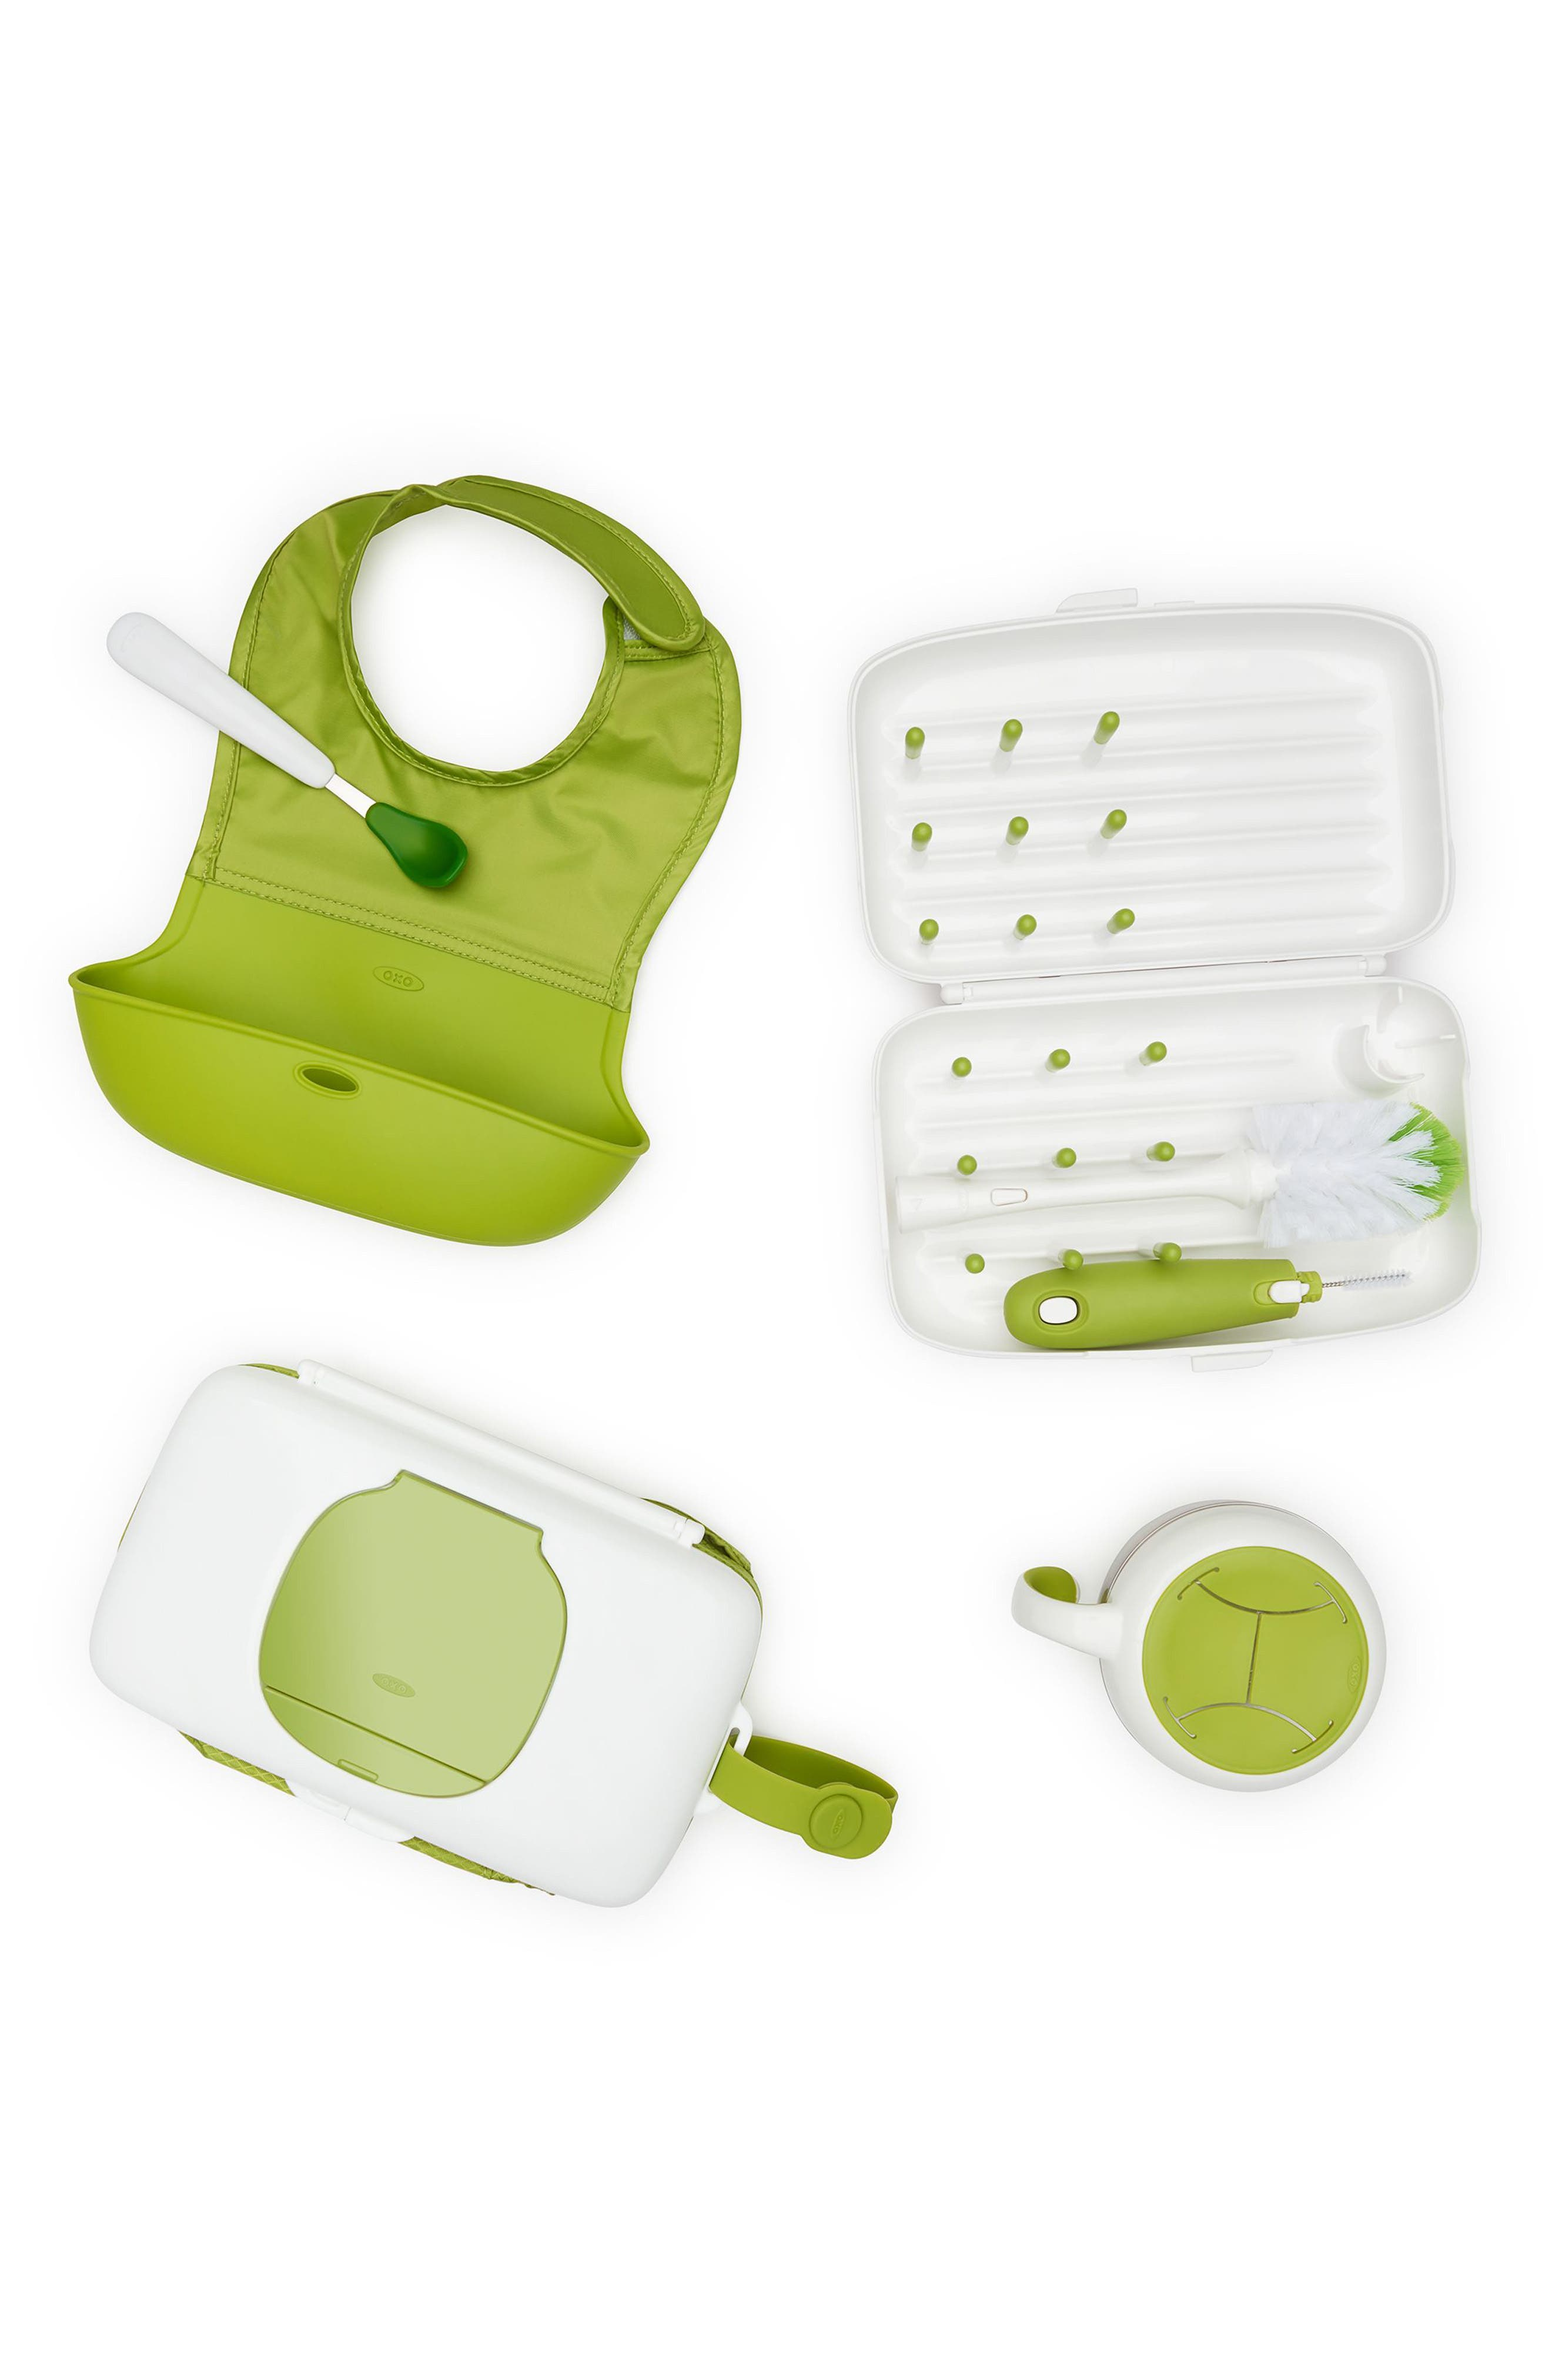 Main Image - Oxo Tot On-the-Go Essentials Gift Set